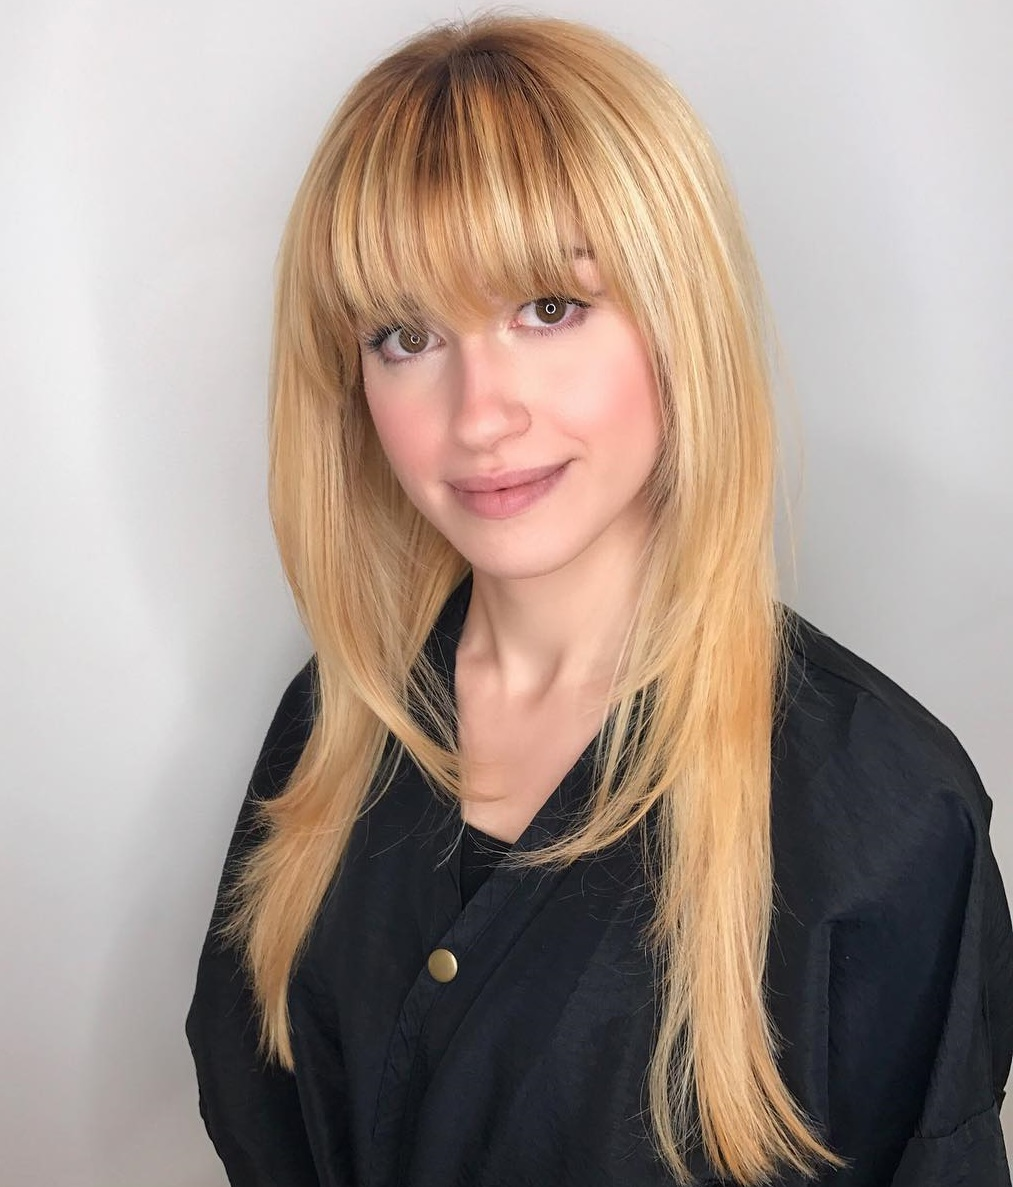 Layered Thin Flat Long Hair with Bangs